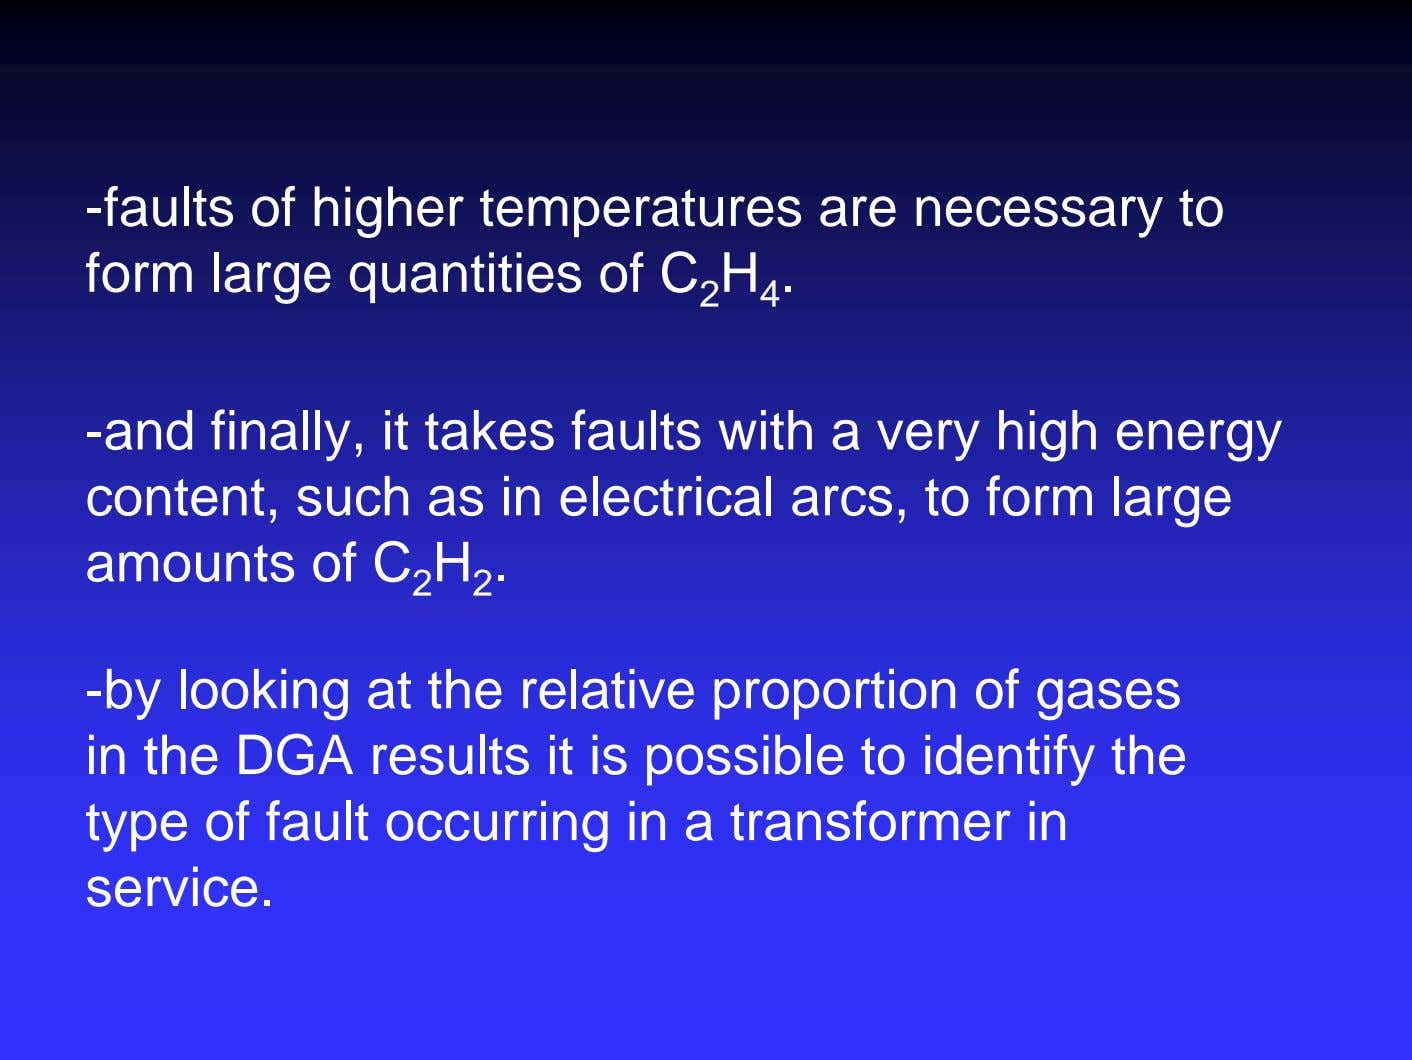 -faults of higher temperatures are necessary to form large quantities of C 2 H 4